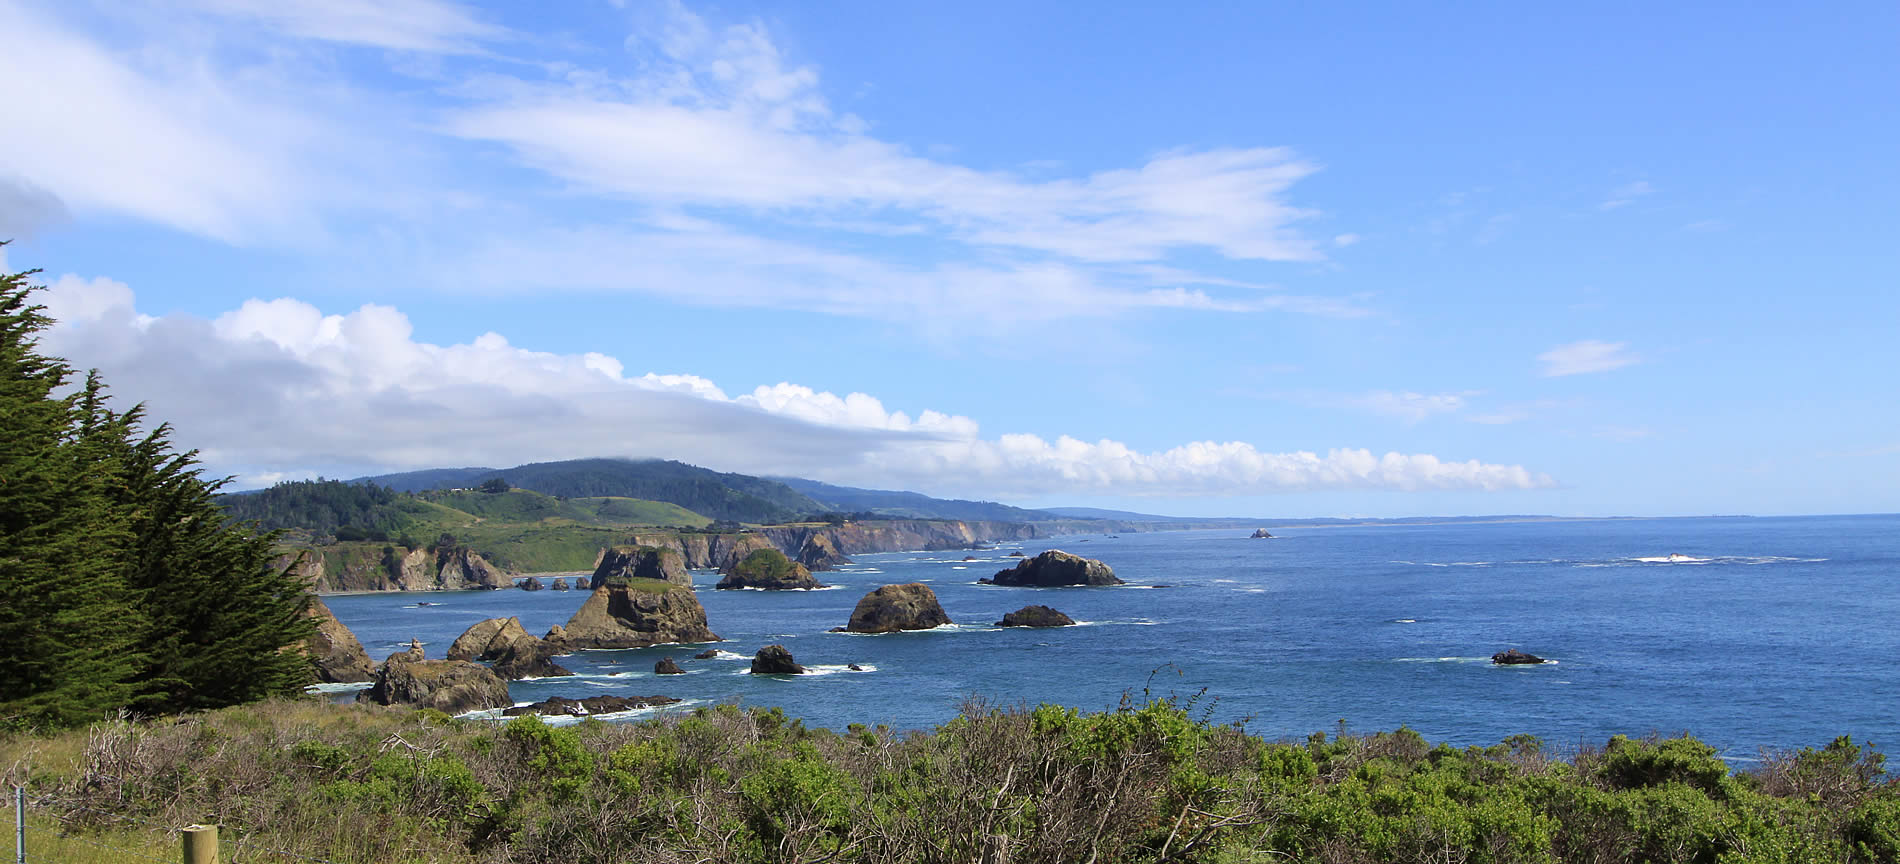 mendocino coast things to do